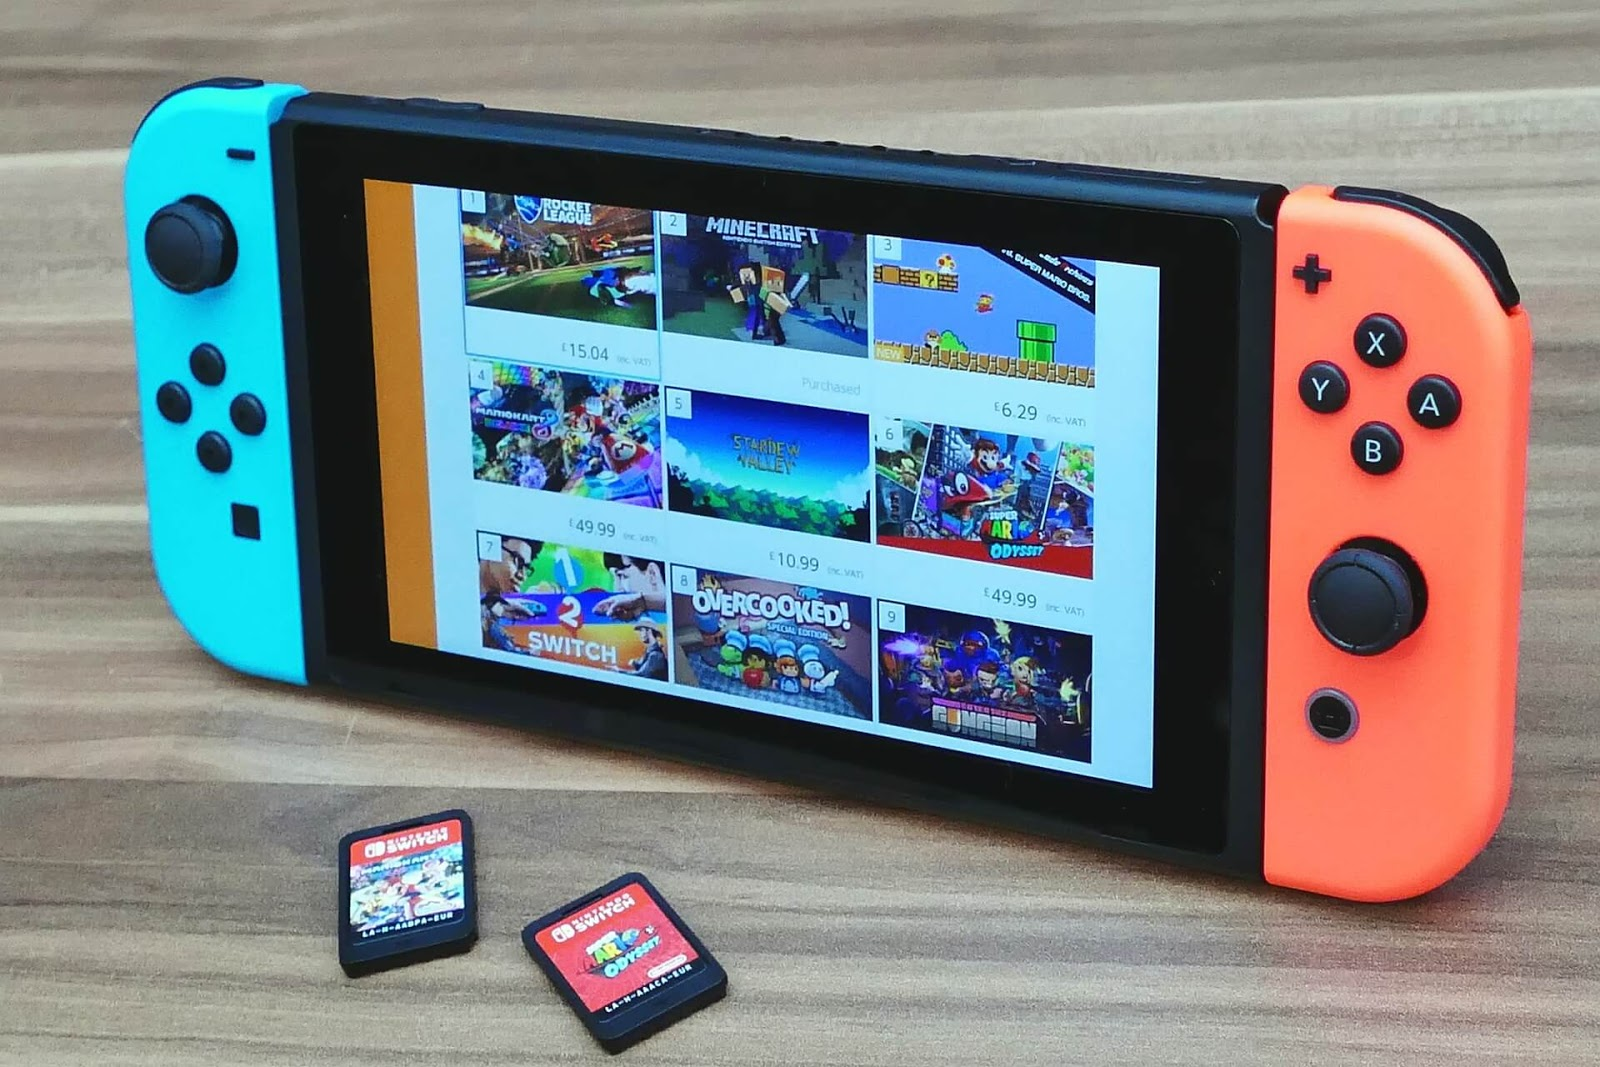 Rumor: Nintendo Making 4K Switch Console To Launch In 2019